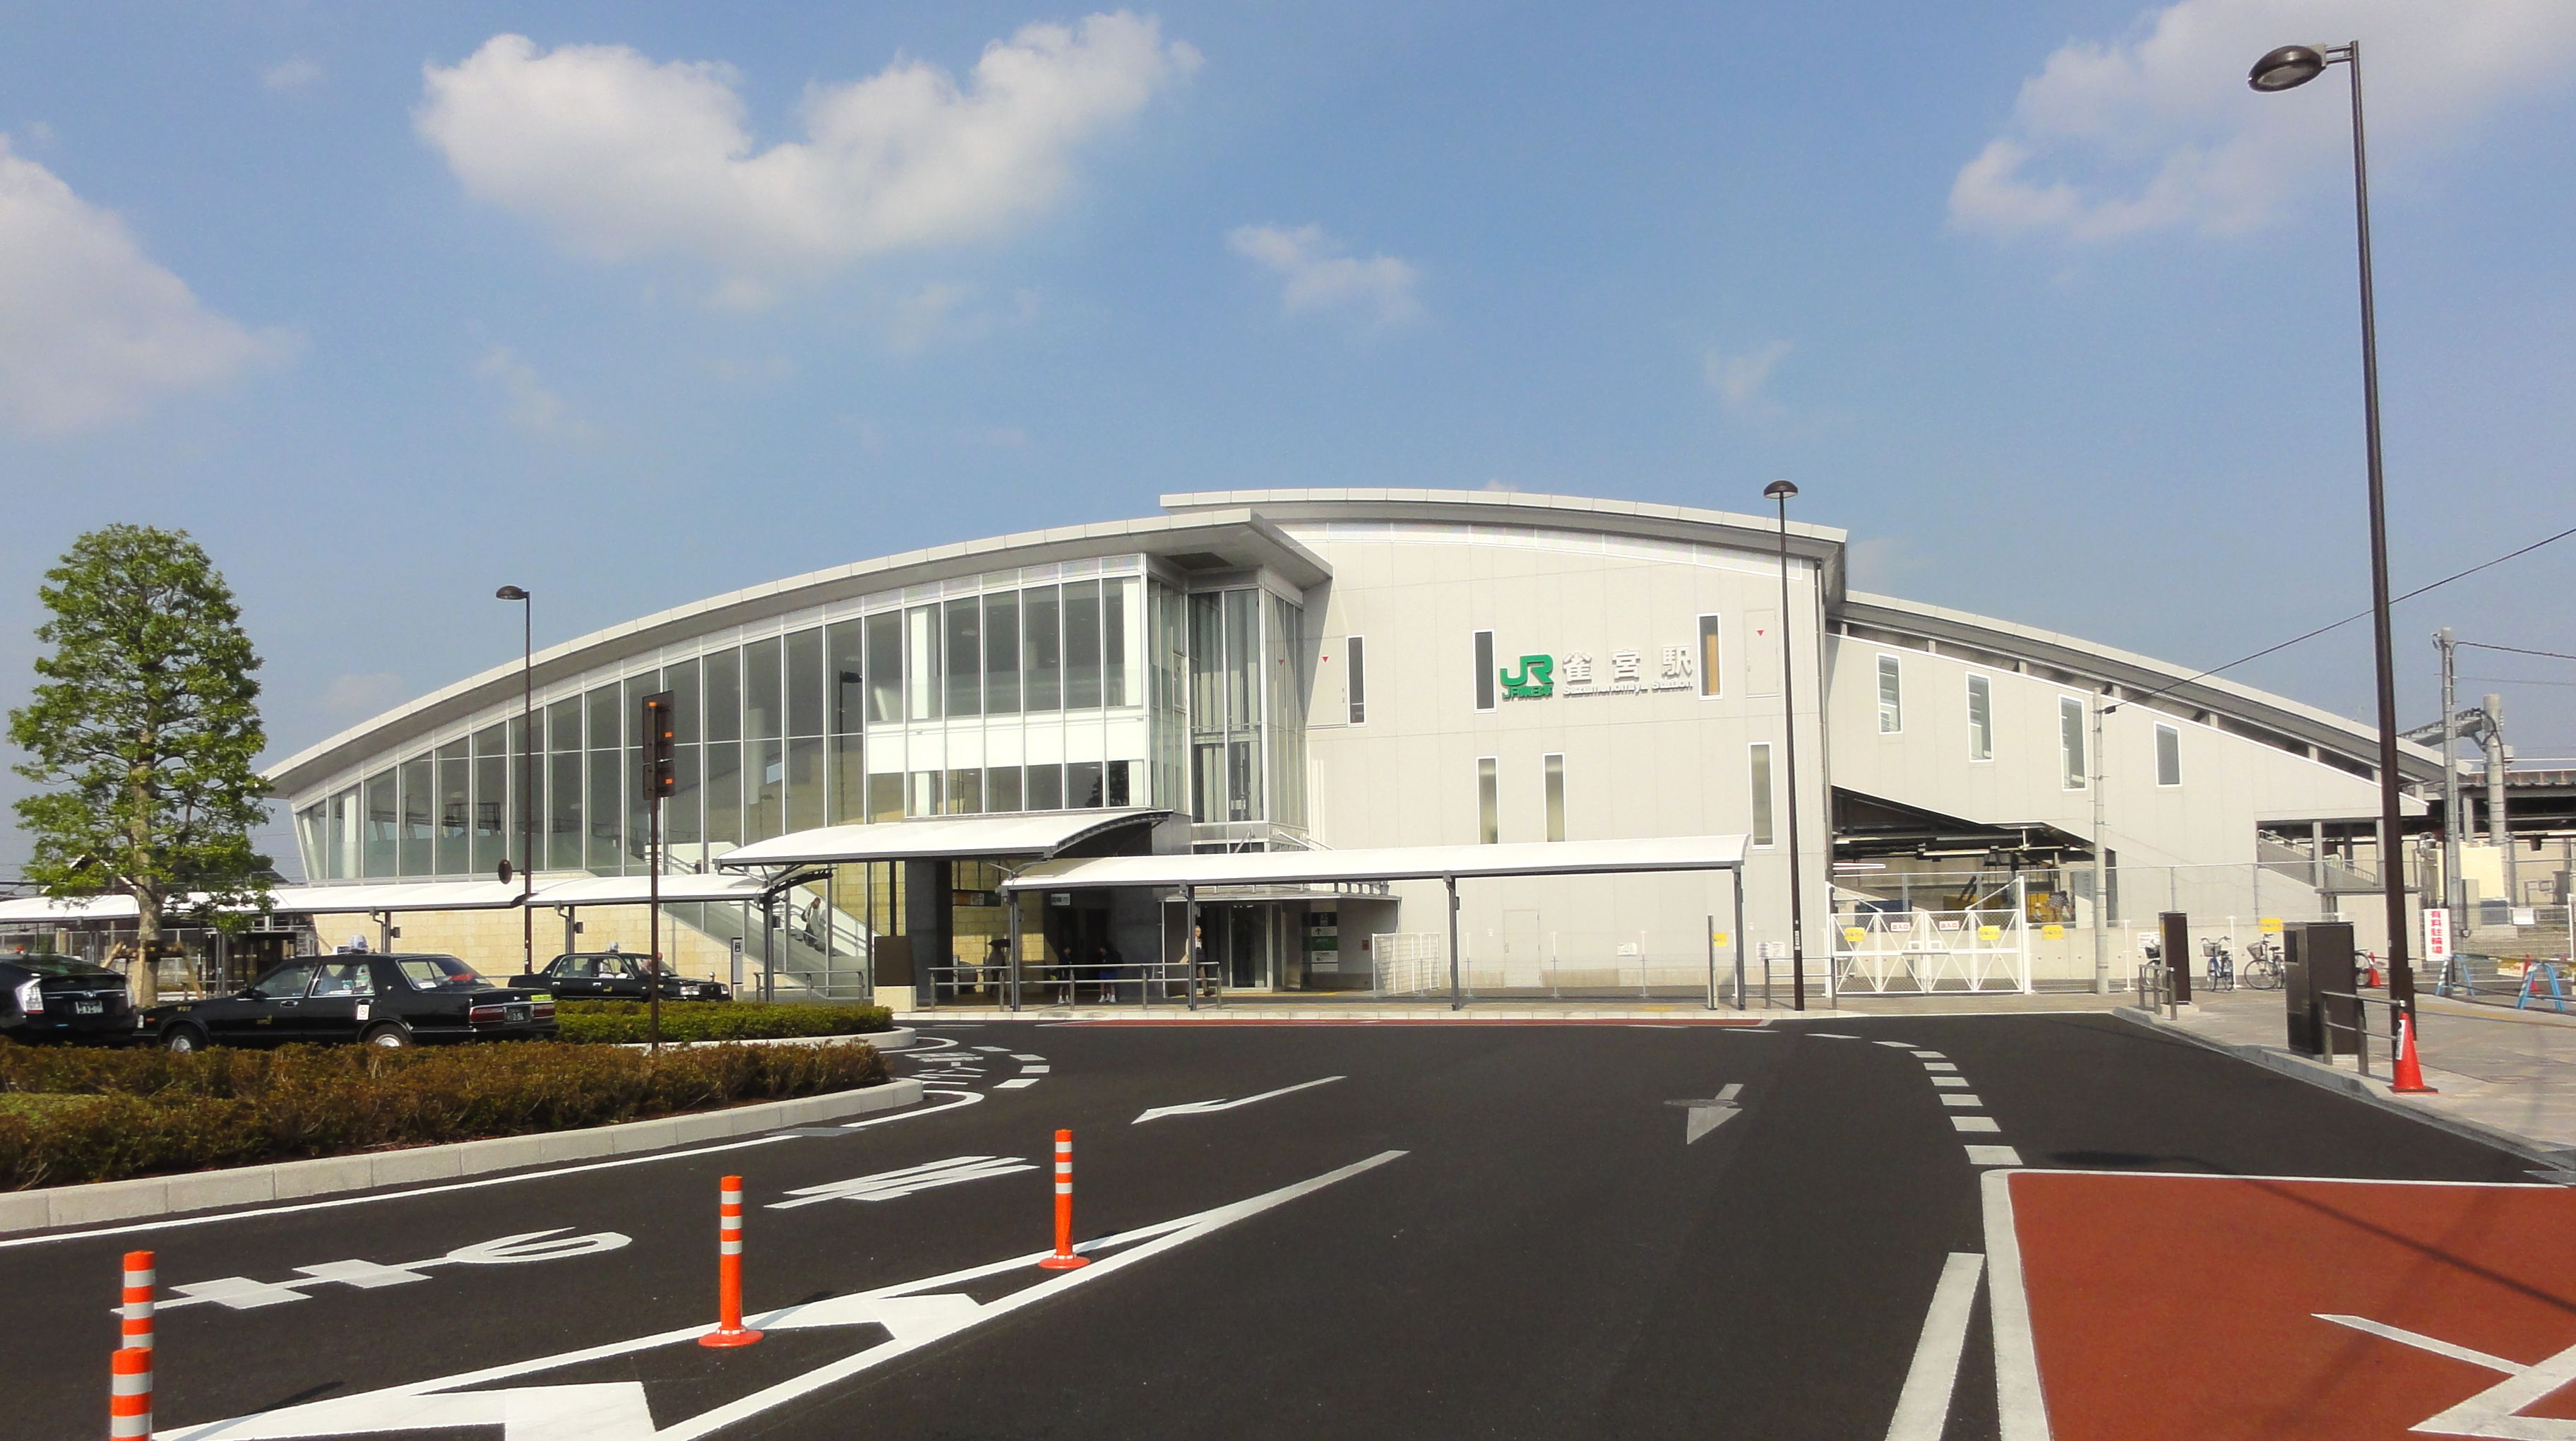 http://upload.wikimedia.org/wikipedia/commons/e/ef/JRE_Suzumenomiya_Station_20130519.jpg